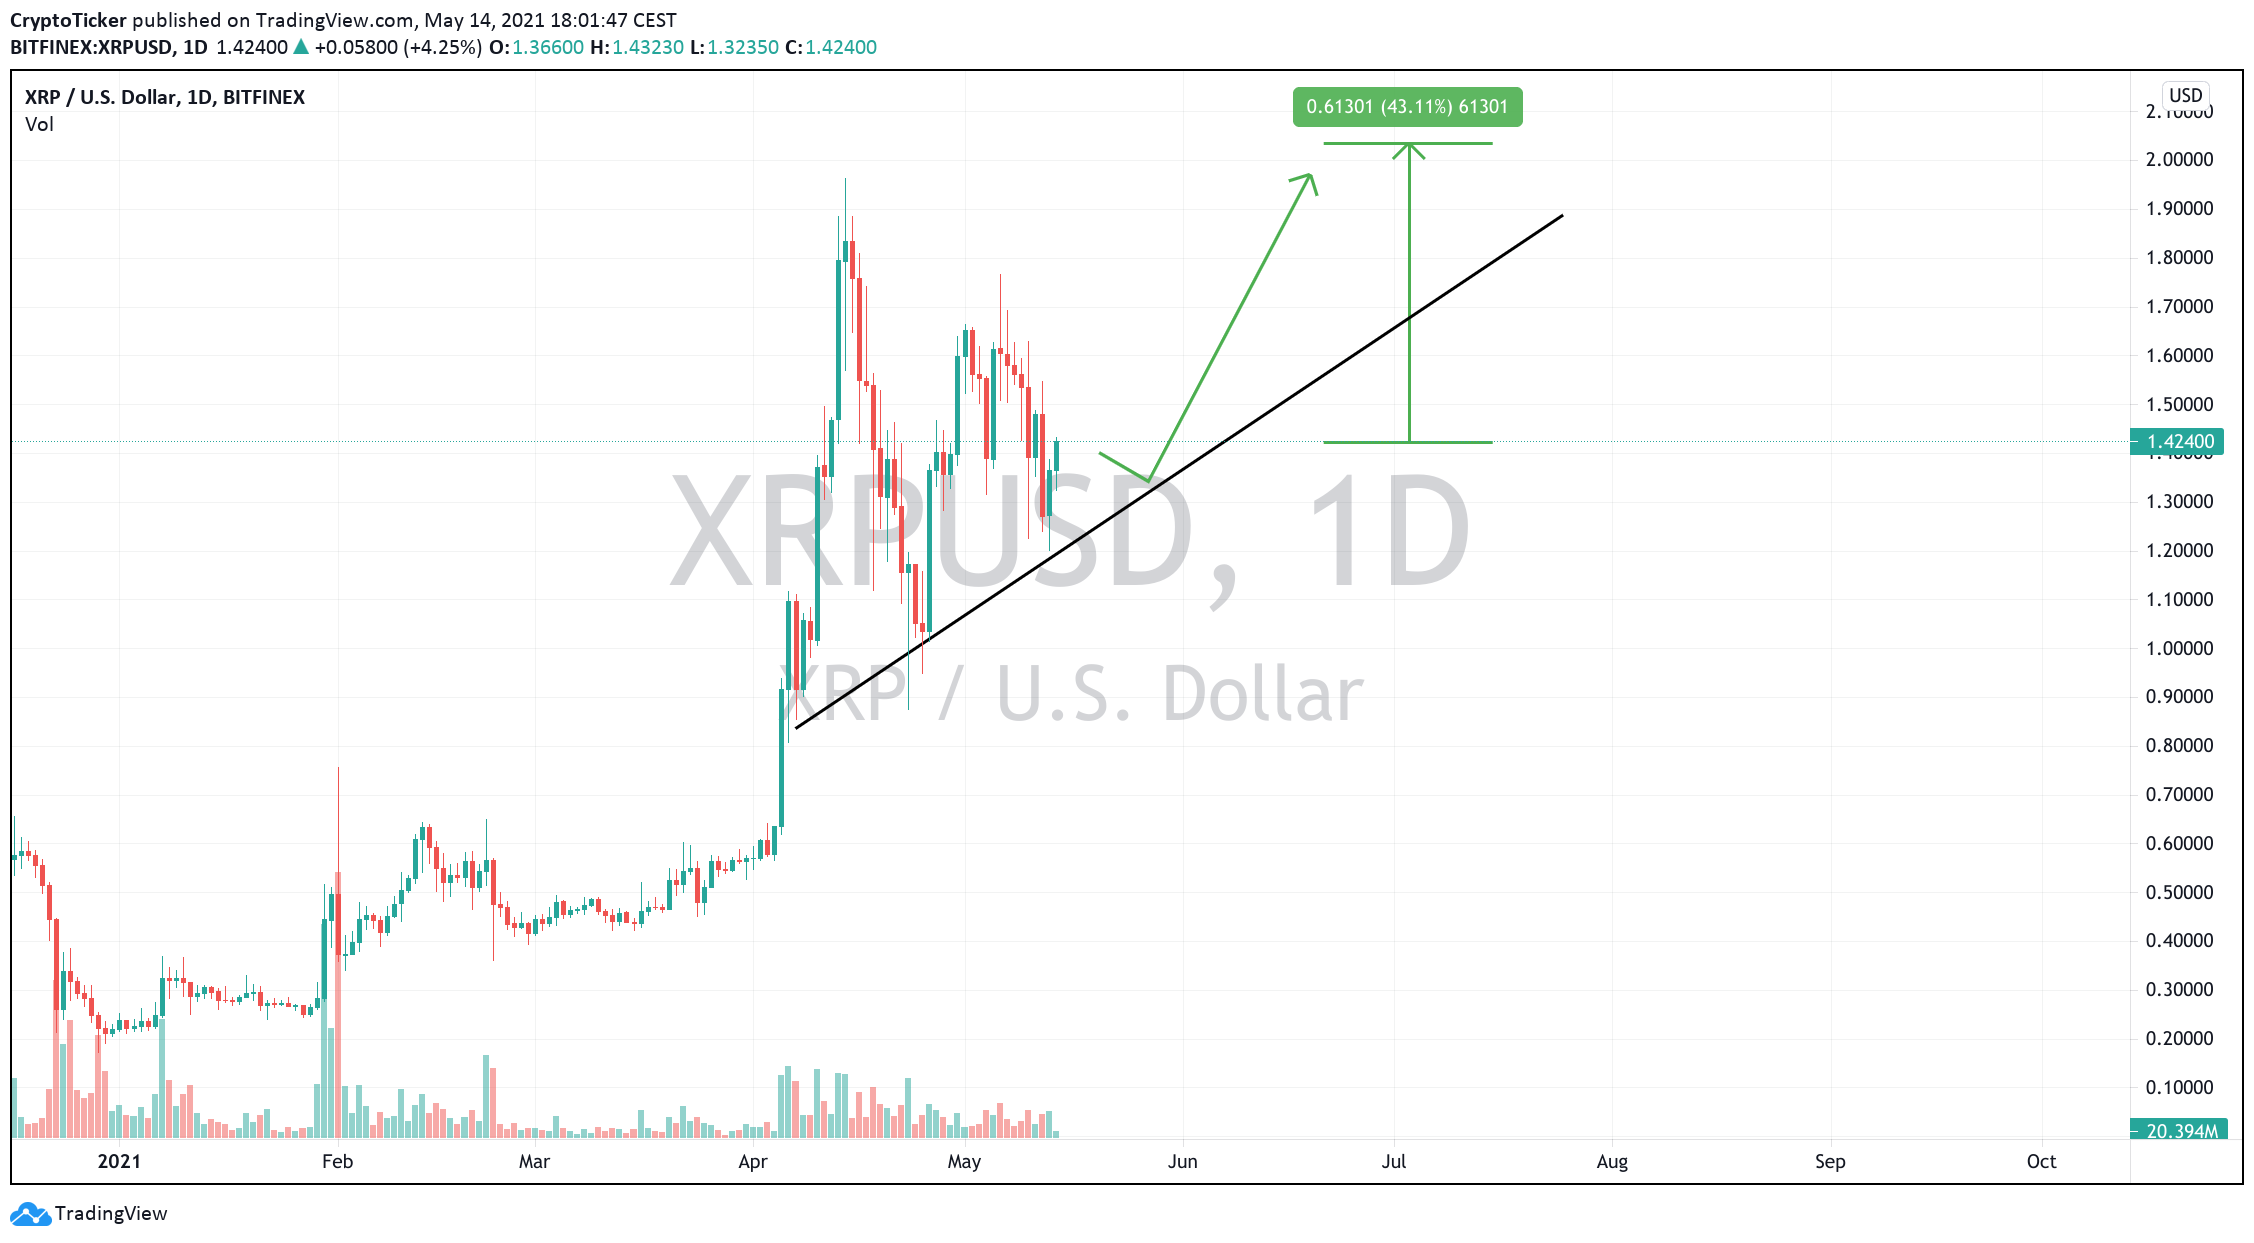 XRP/USD 1-day chart showing XRP's potential target